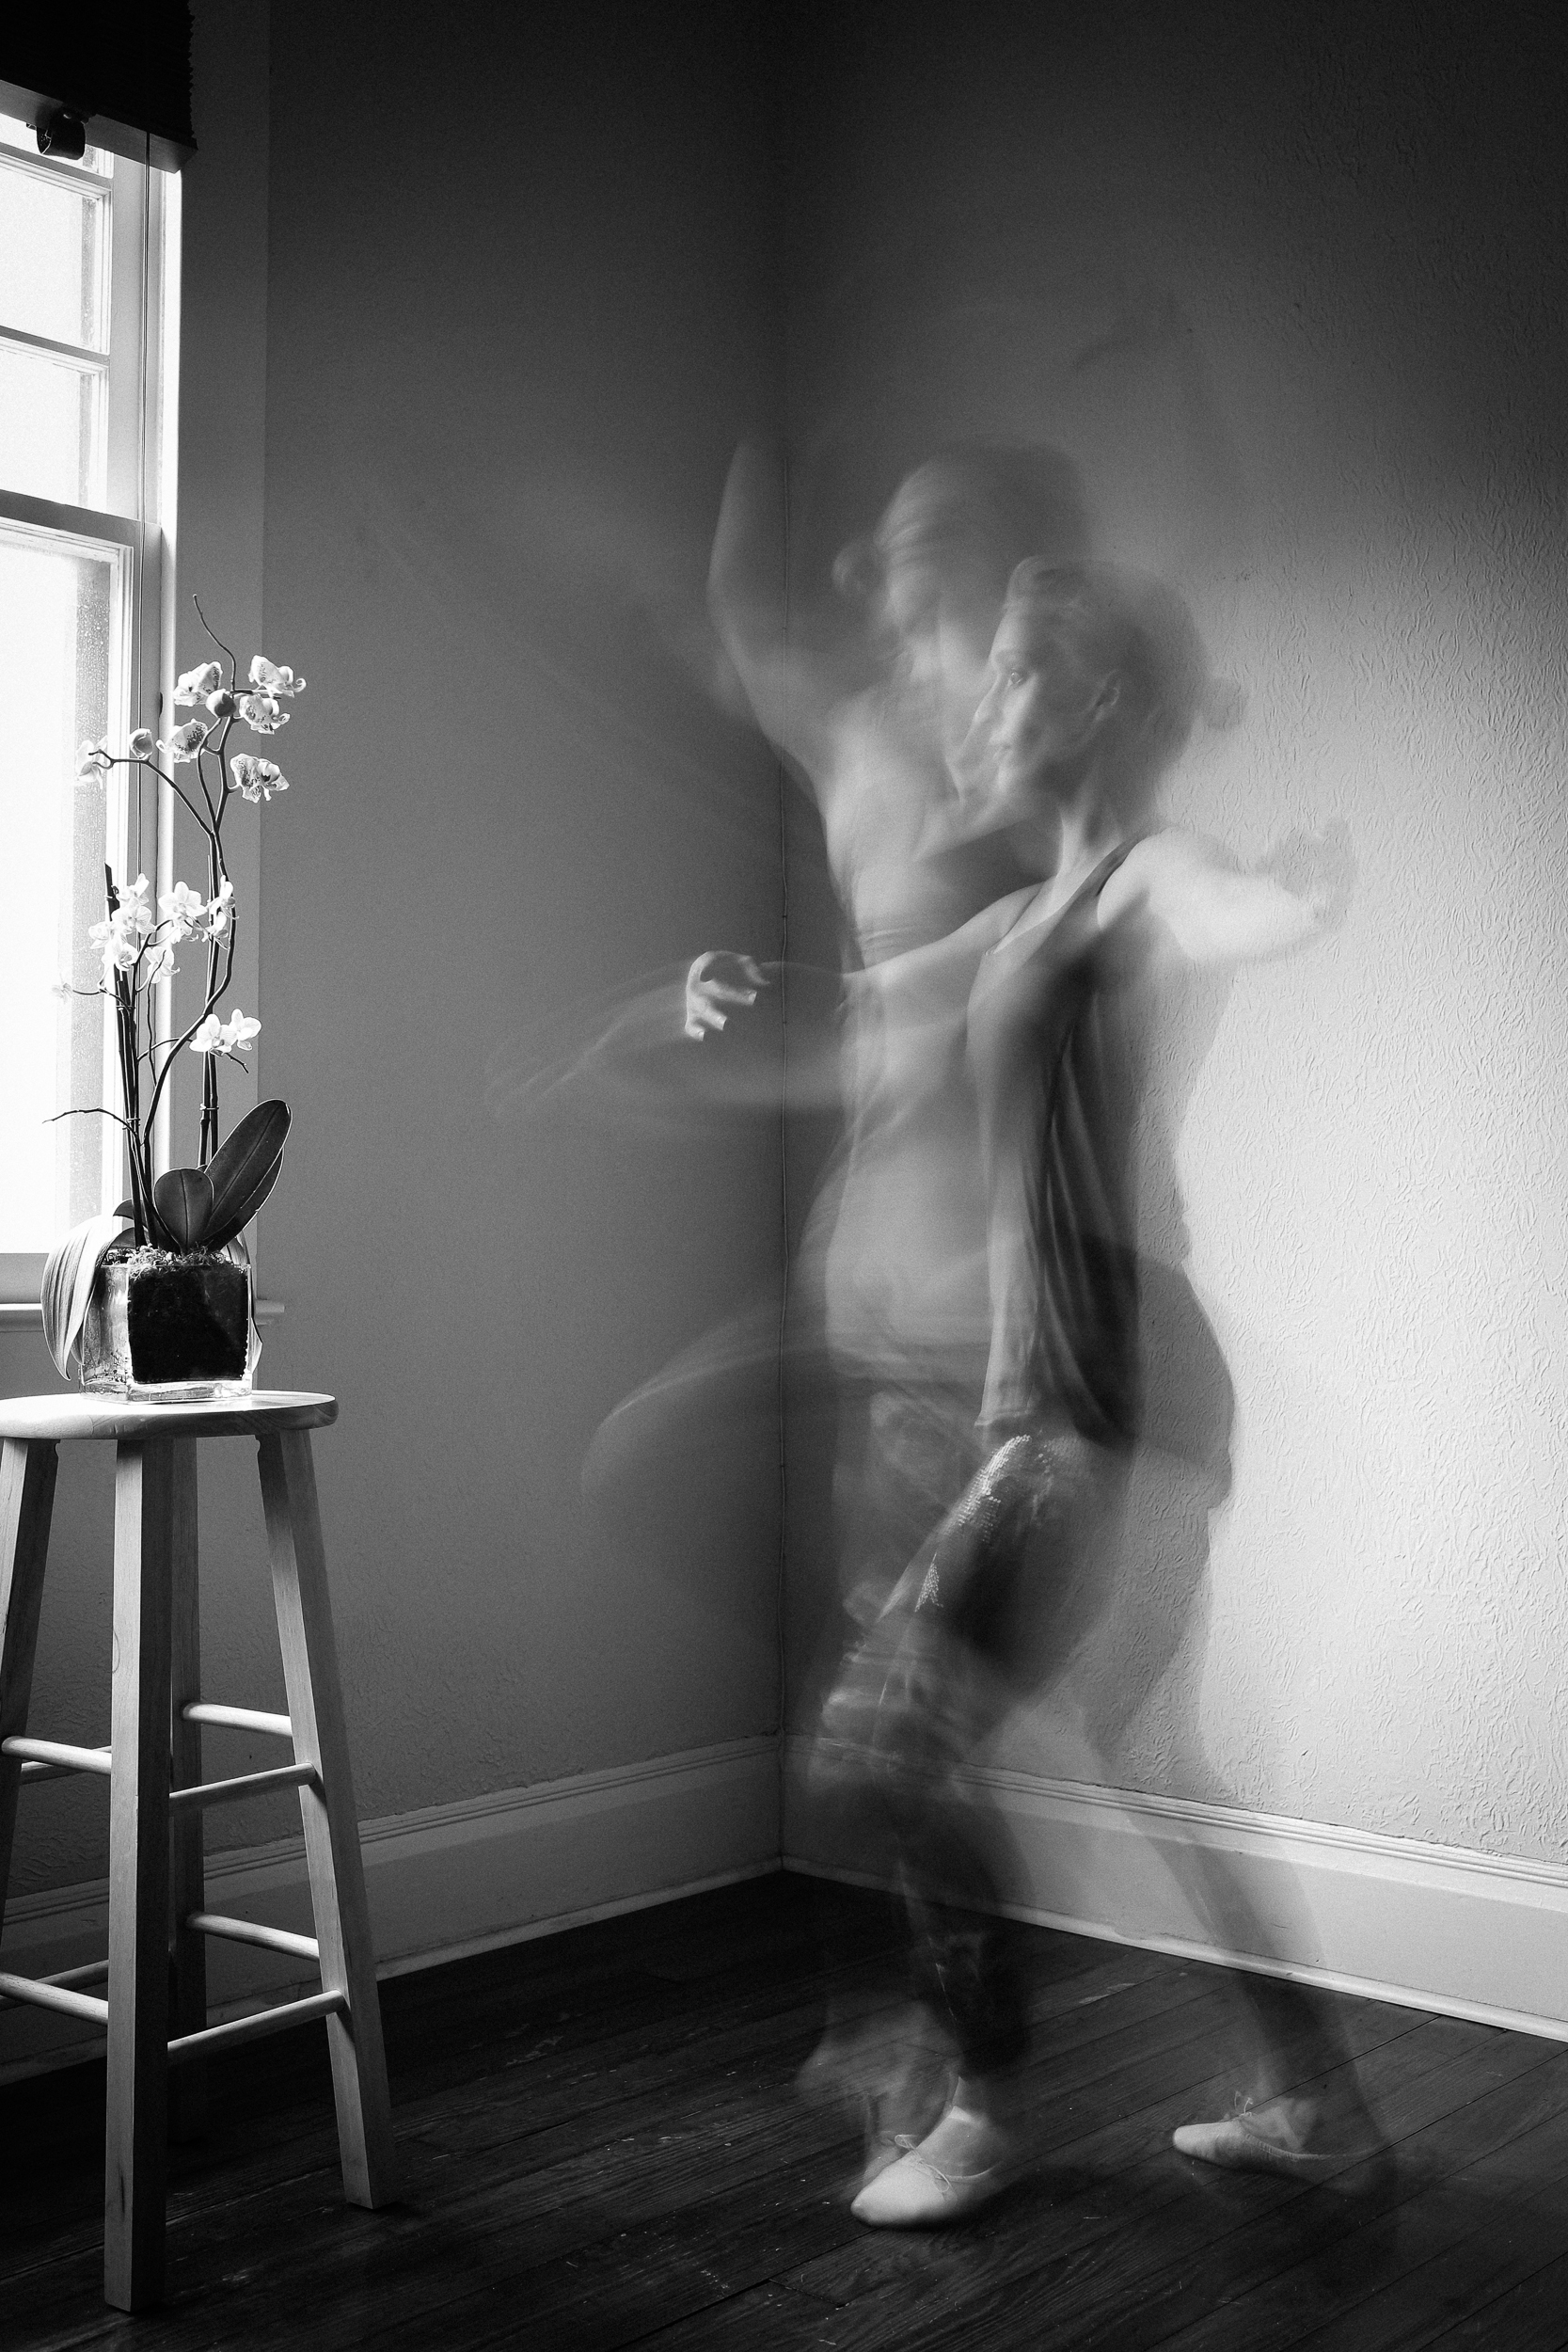 Dance. A self-portrait.